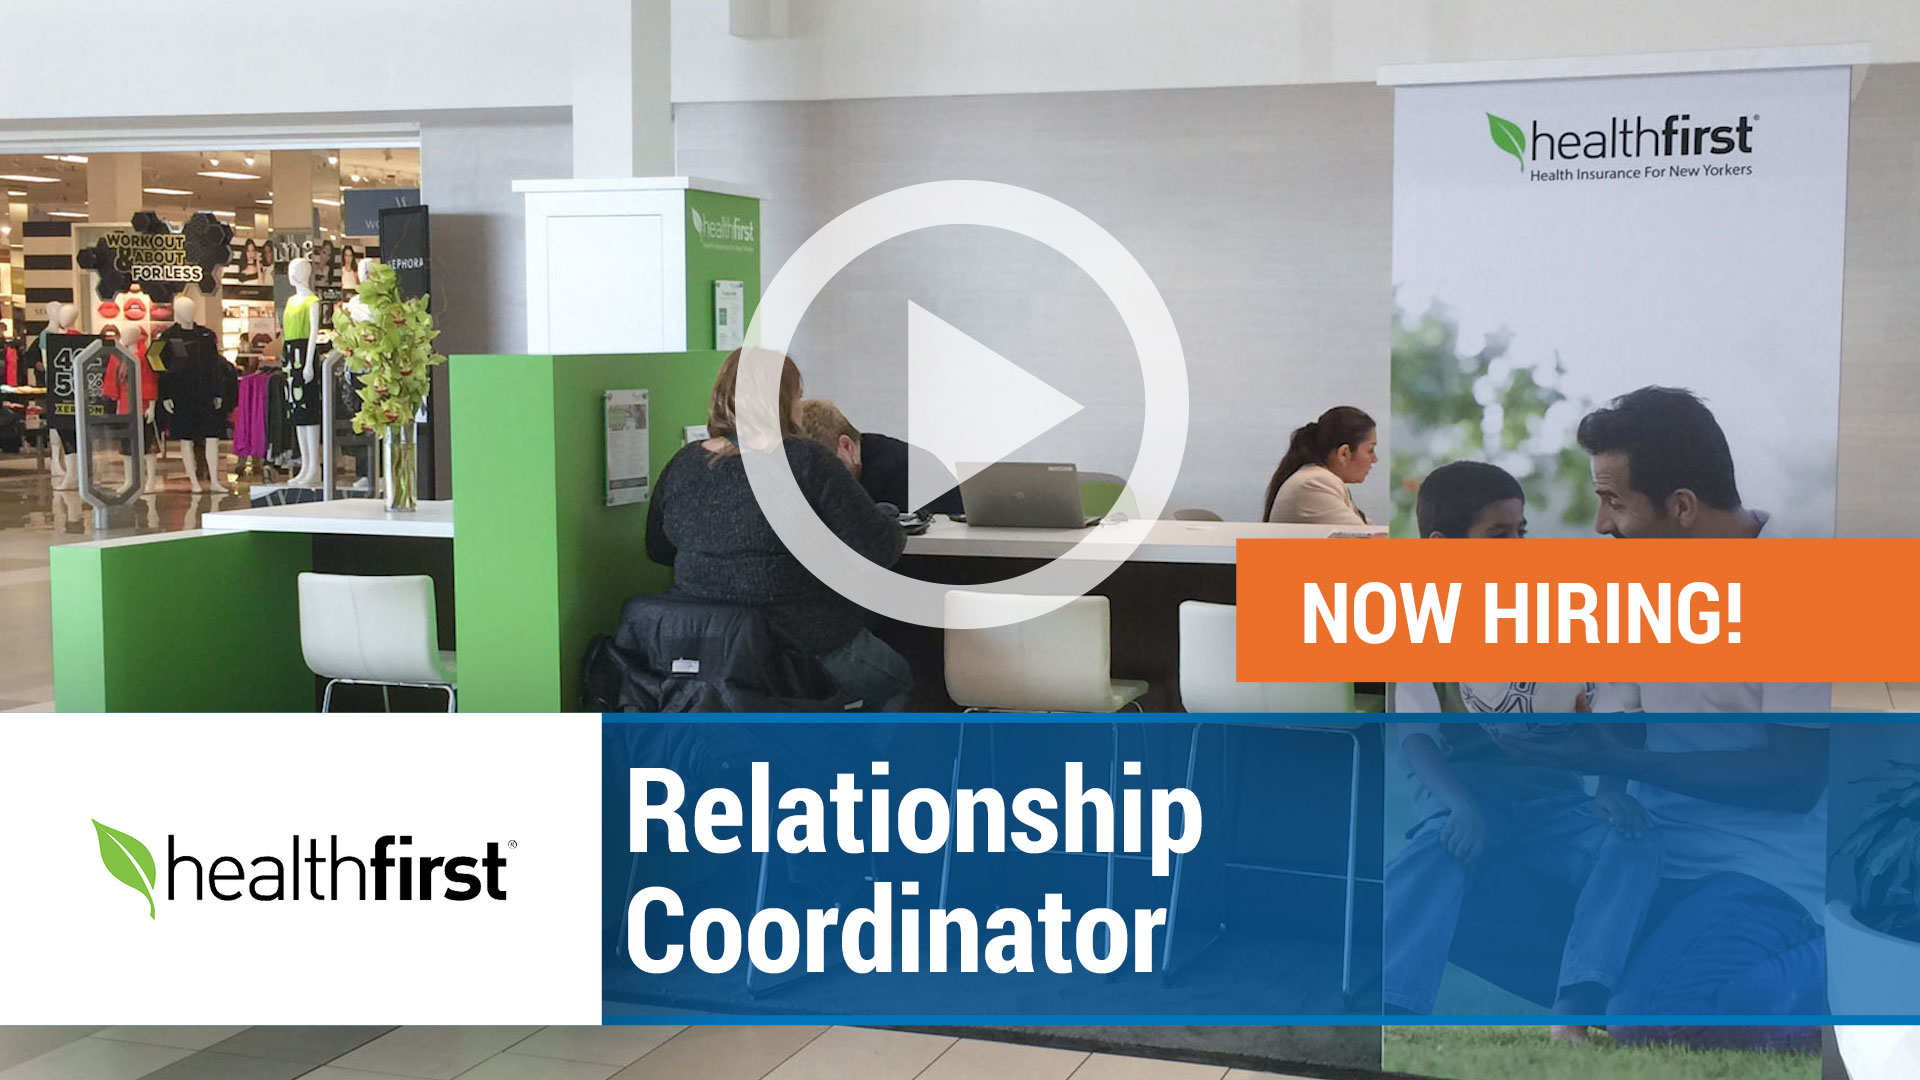 Watch our careers video for available job opening Relationship Coordinator in New York, NY, USA